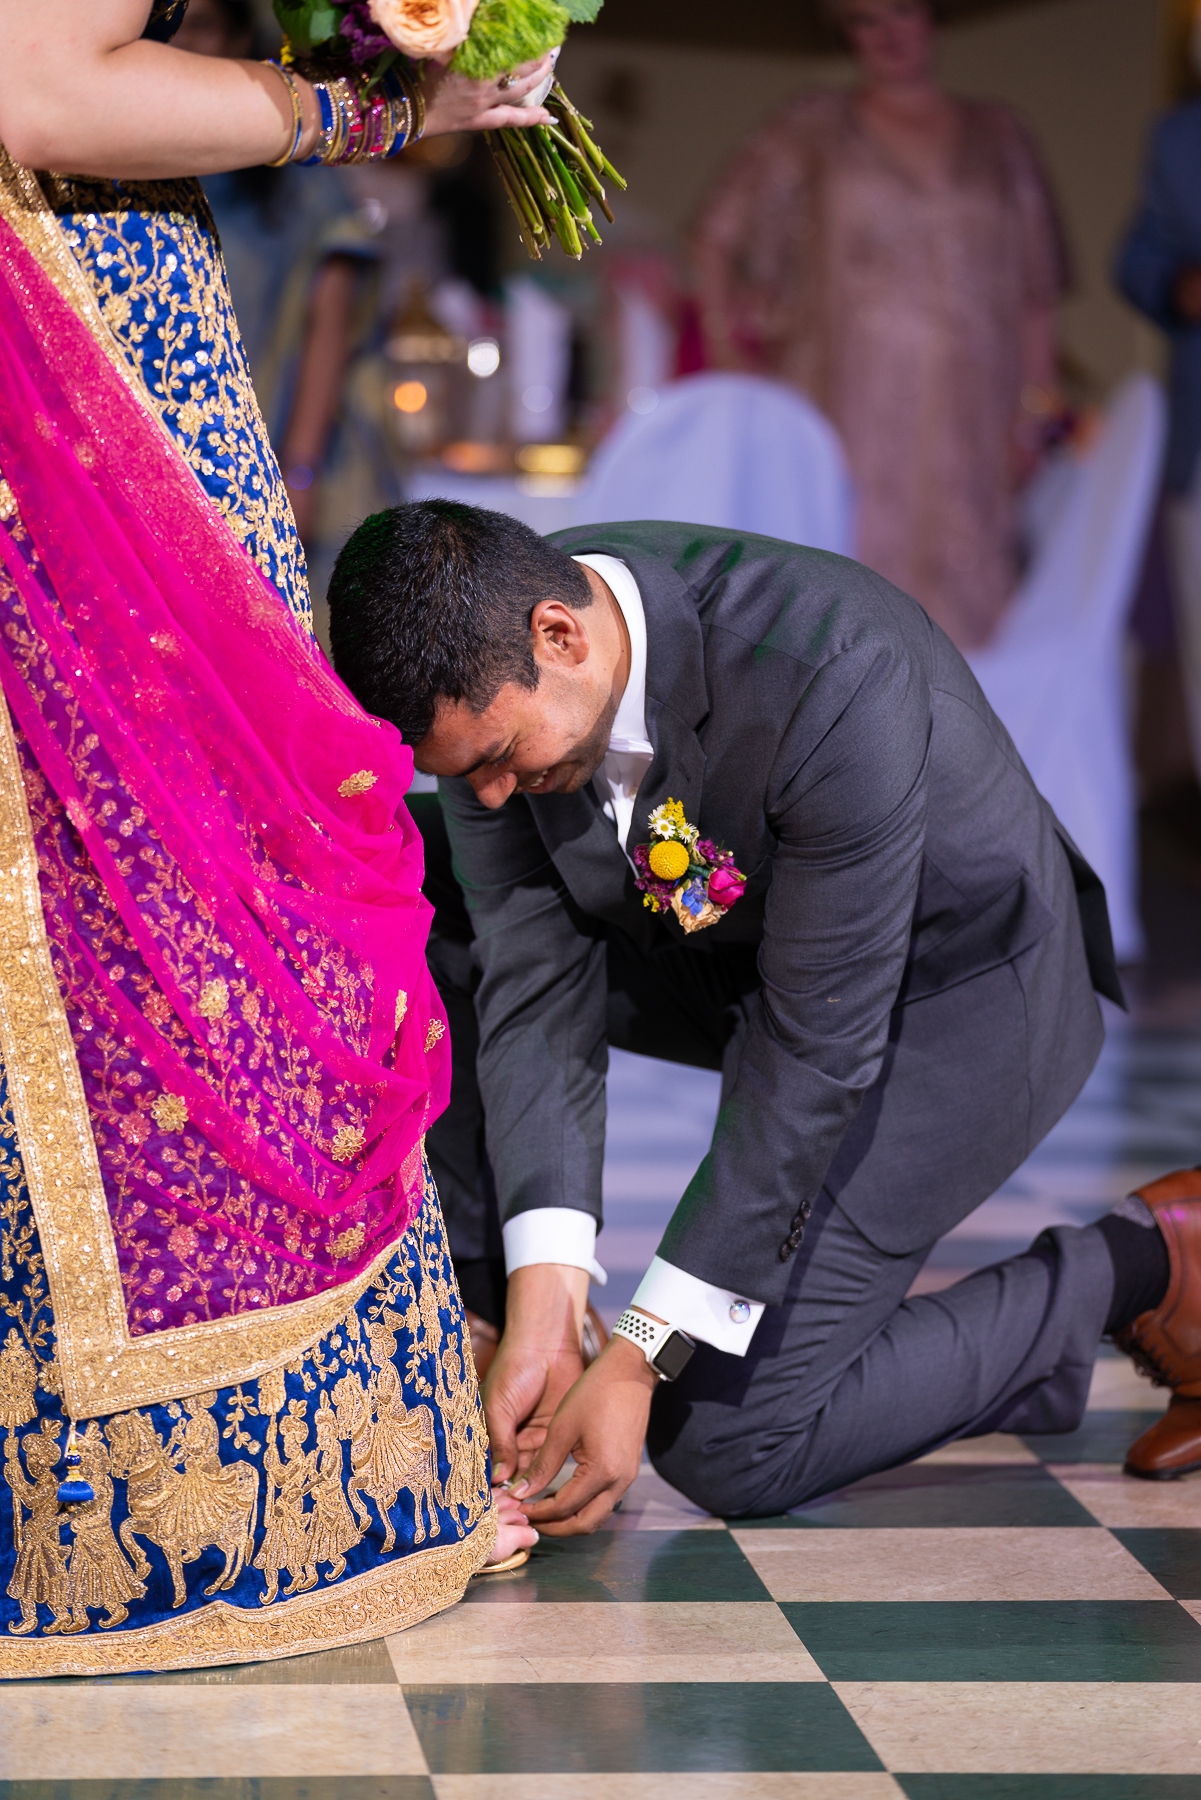 The Groom placing the toe ring on his new Bride. We enjoyed learning about this tradition of his Indian Culture.